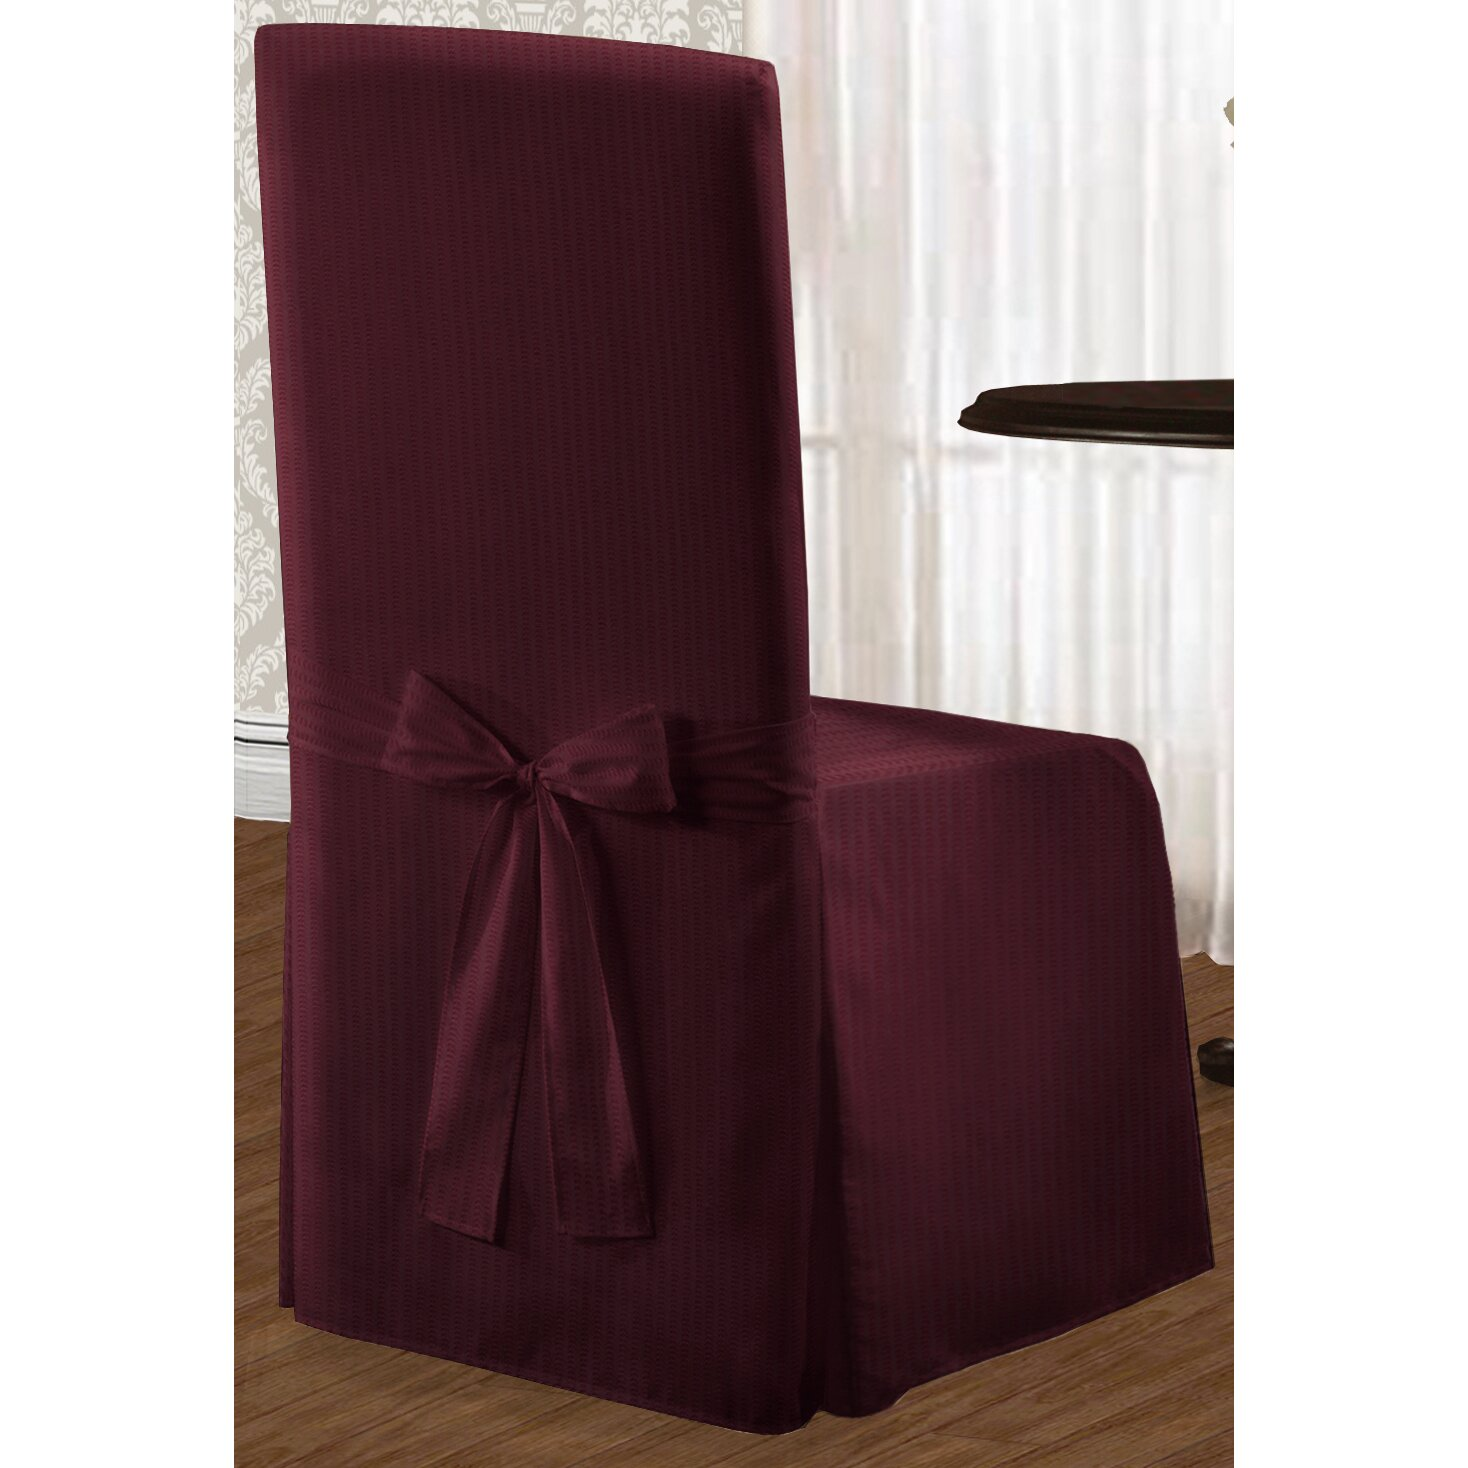 furniture living room furniture parson dining chair slipcovers